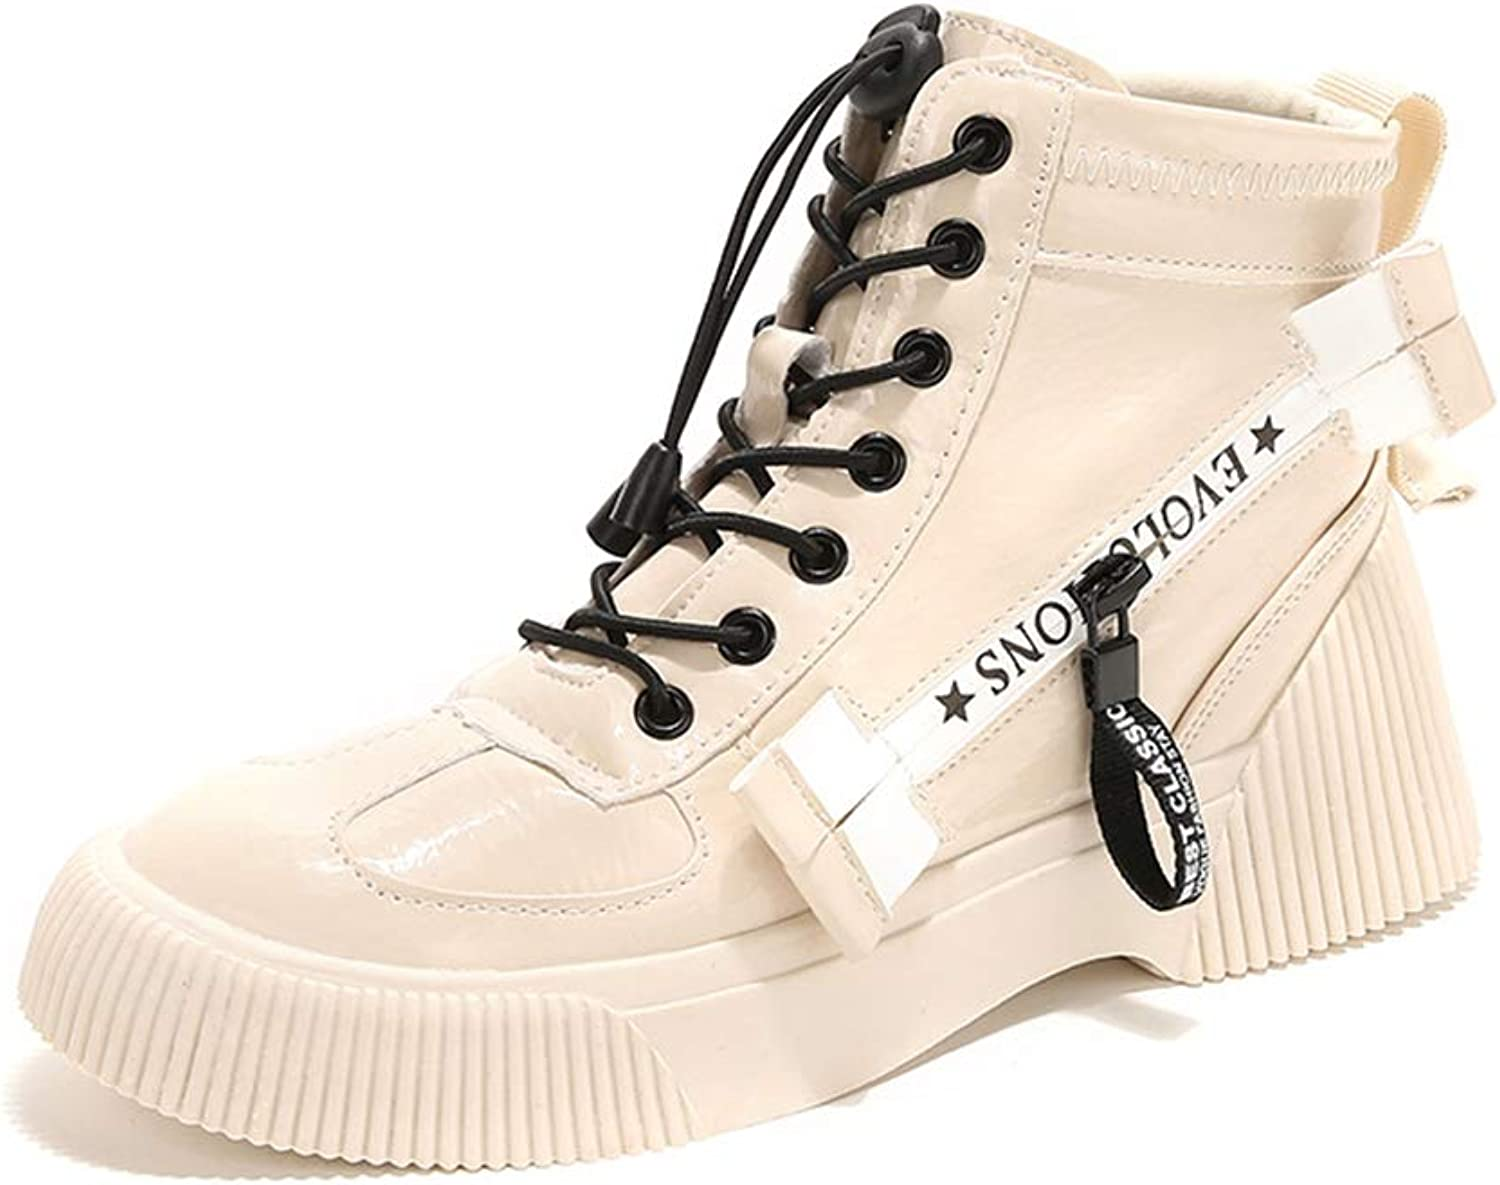 Women's Casual shoes Vintage Patent Leather shoes Fashion Platform shoes HighTop Sneakers Fashion Martin Boots,B,40